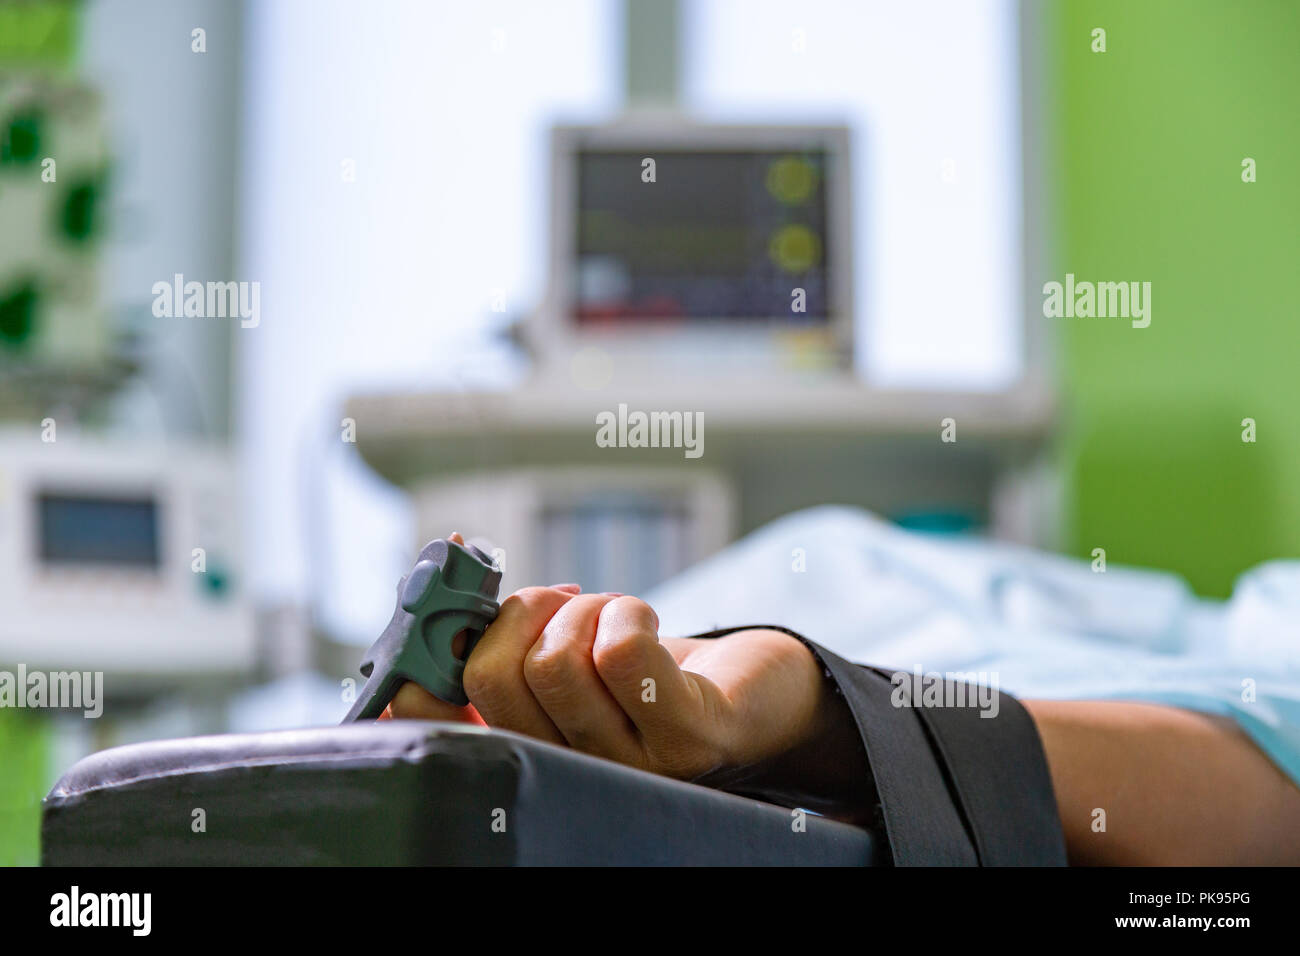 Patients hand with a sensor on the blurry background of the group of doctors in the operating room. Close up, Selective focus - Stock Image